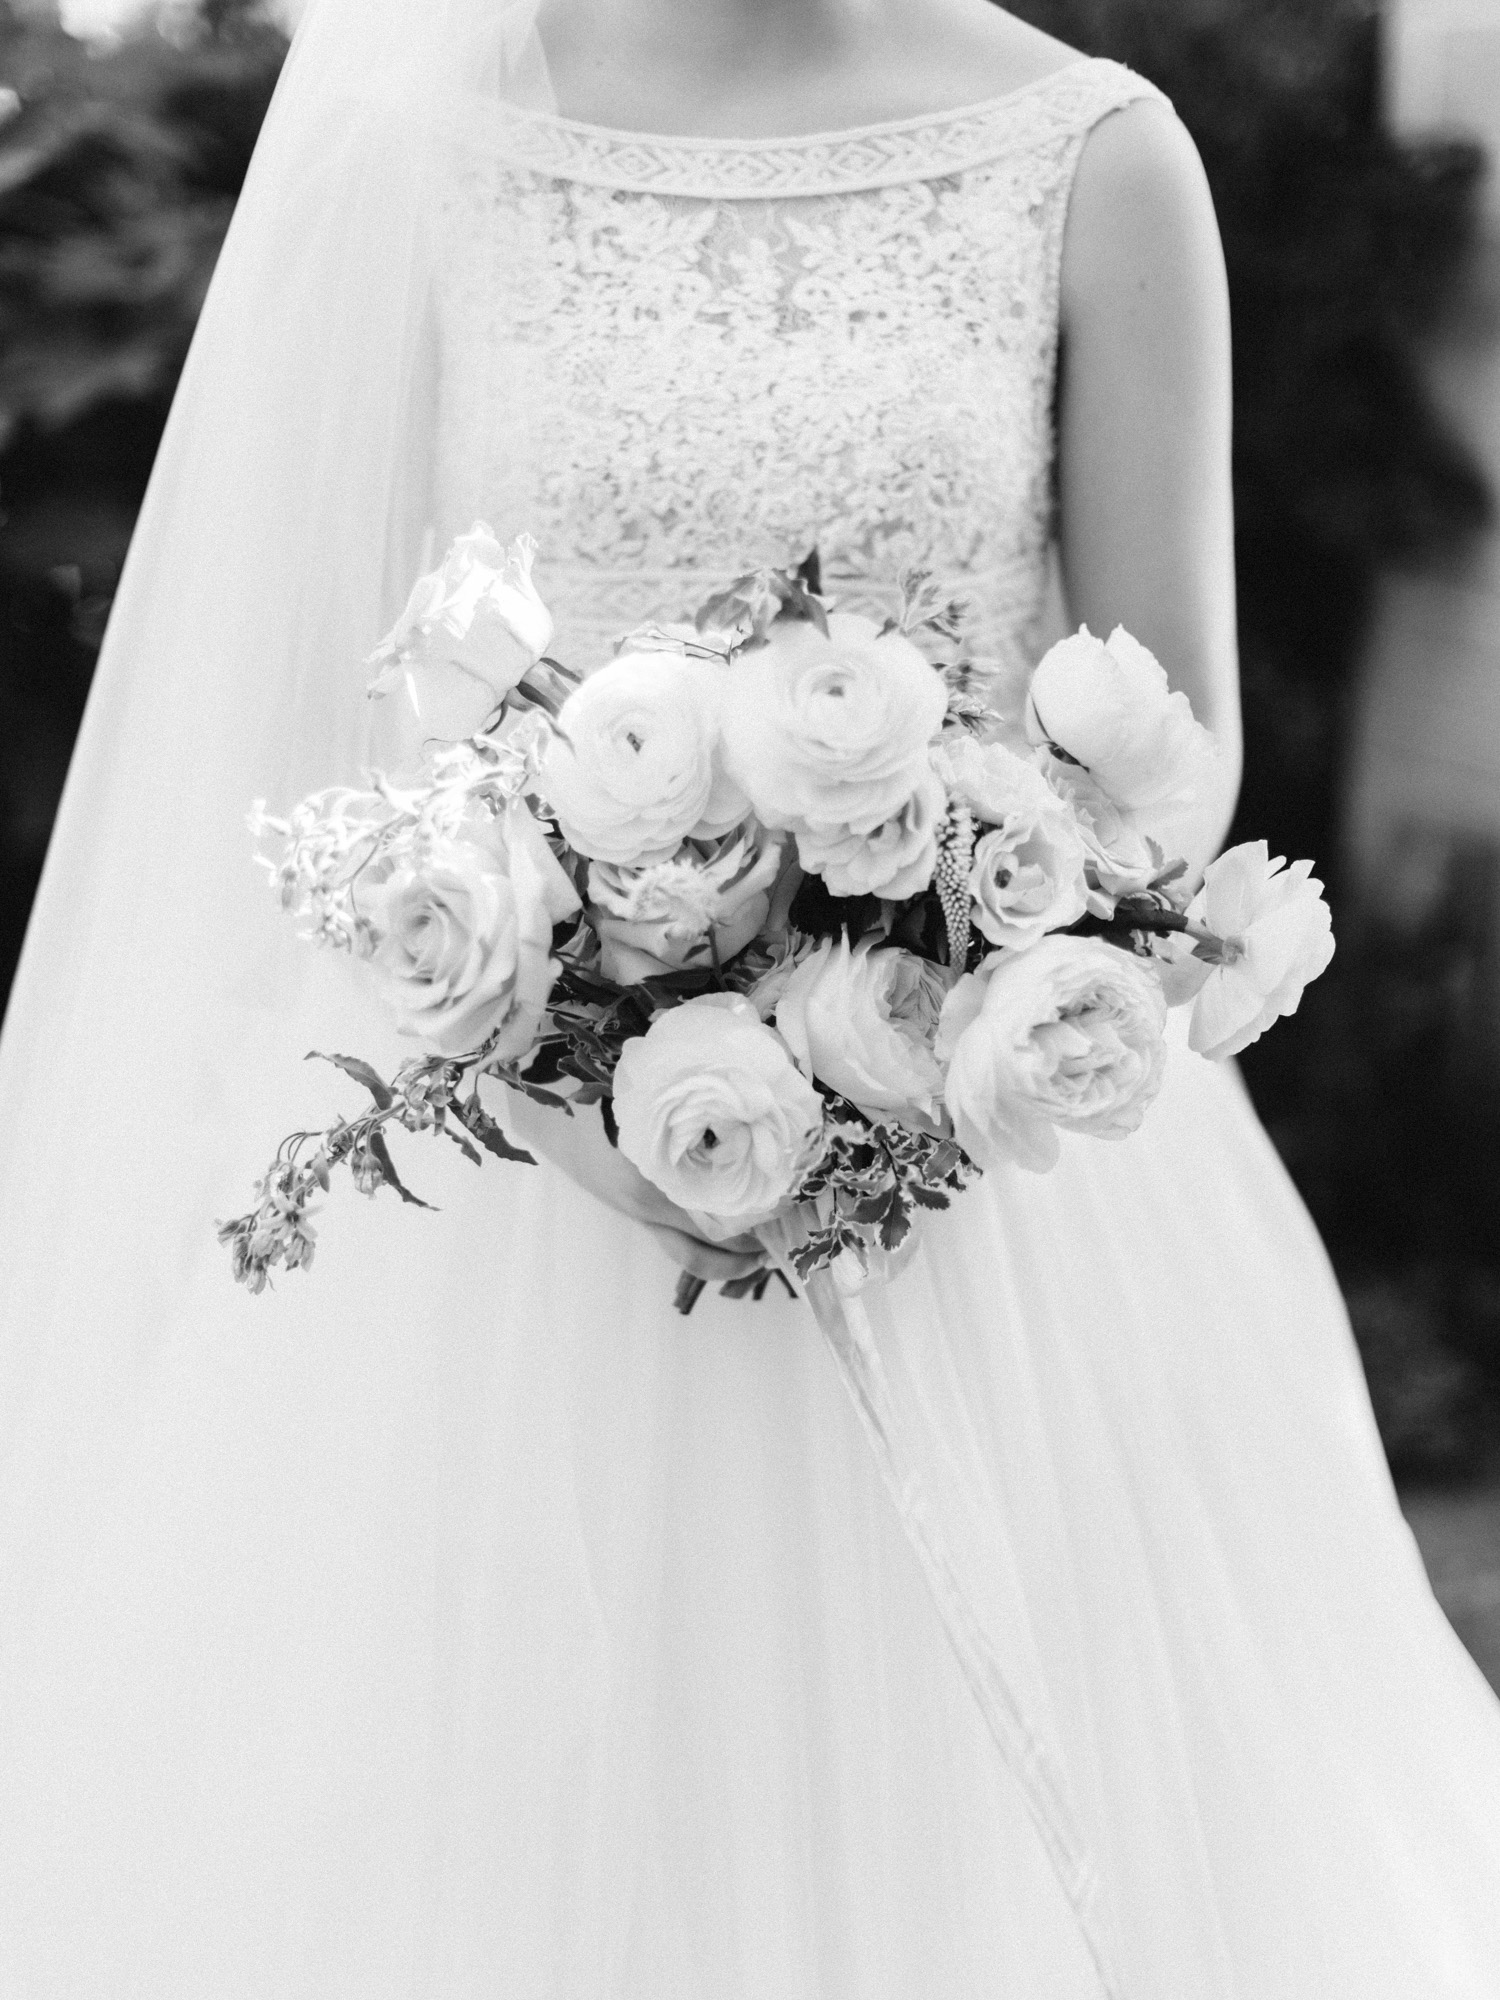 A bridal bouquet has a timeless look captured on black and white film by Christina Harrison